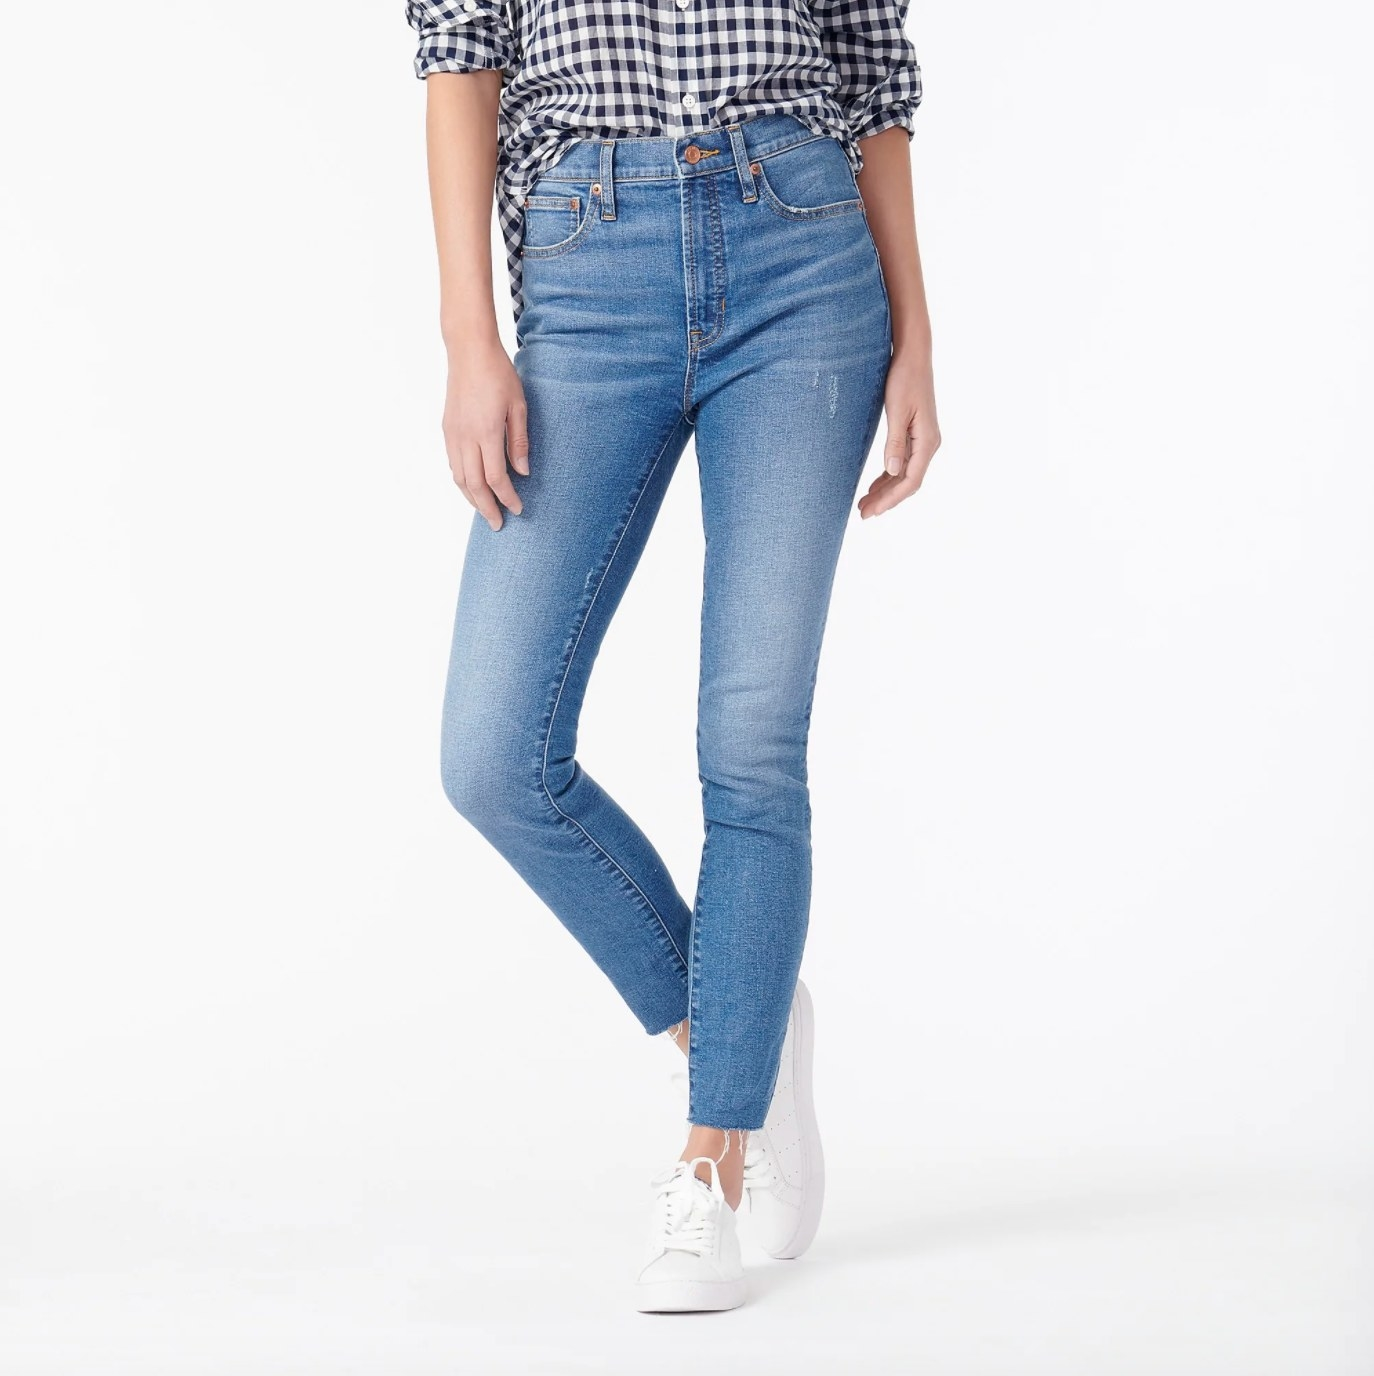 The pair of high-rise toothpick jeans in blue